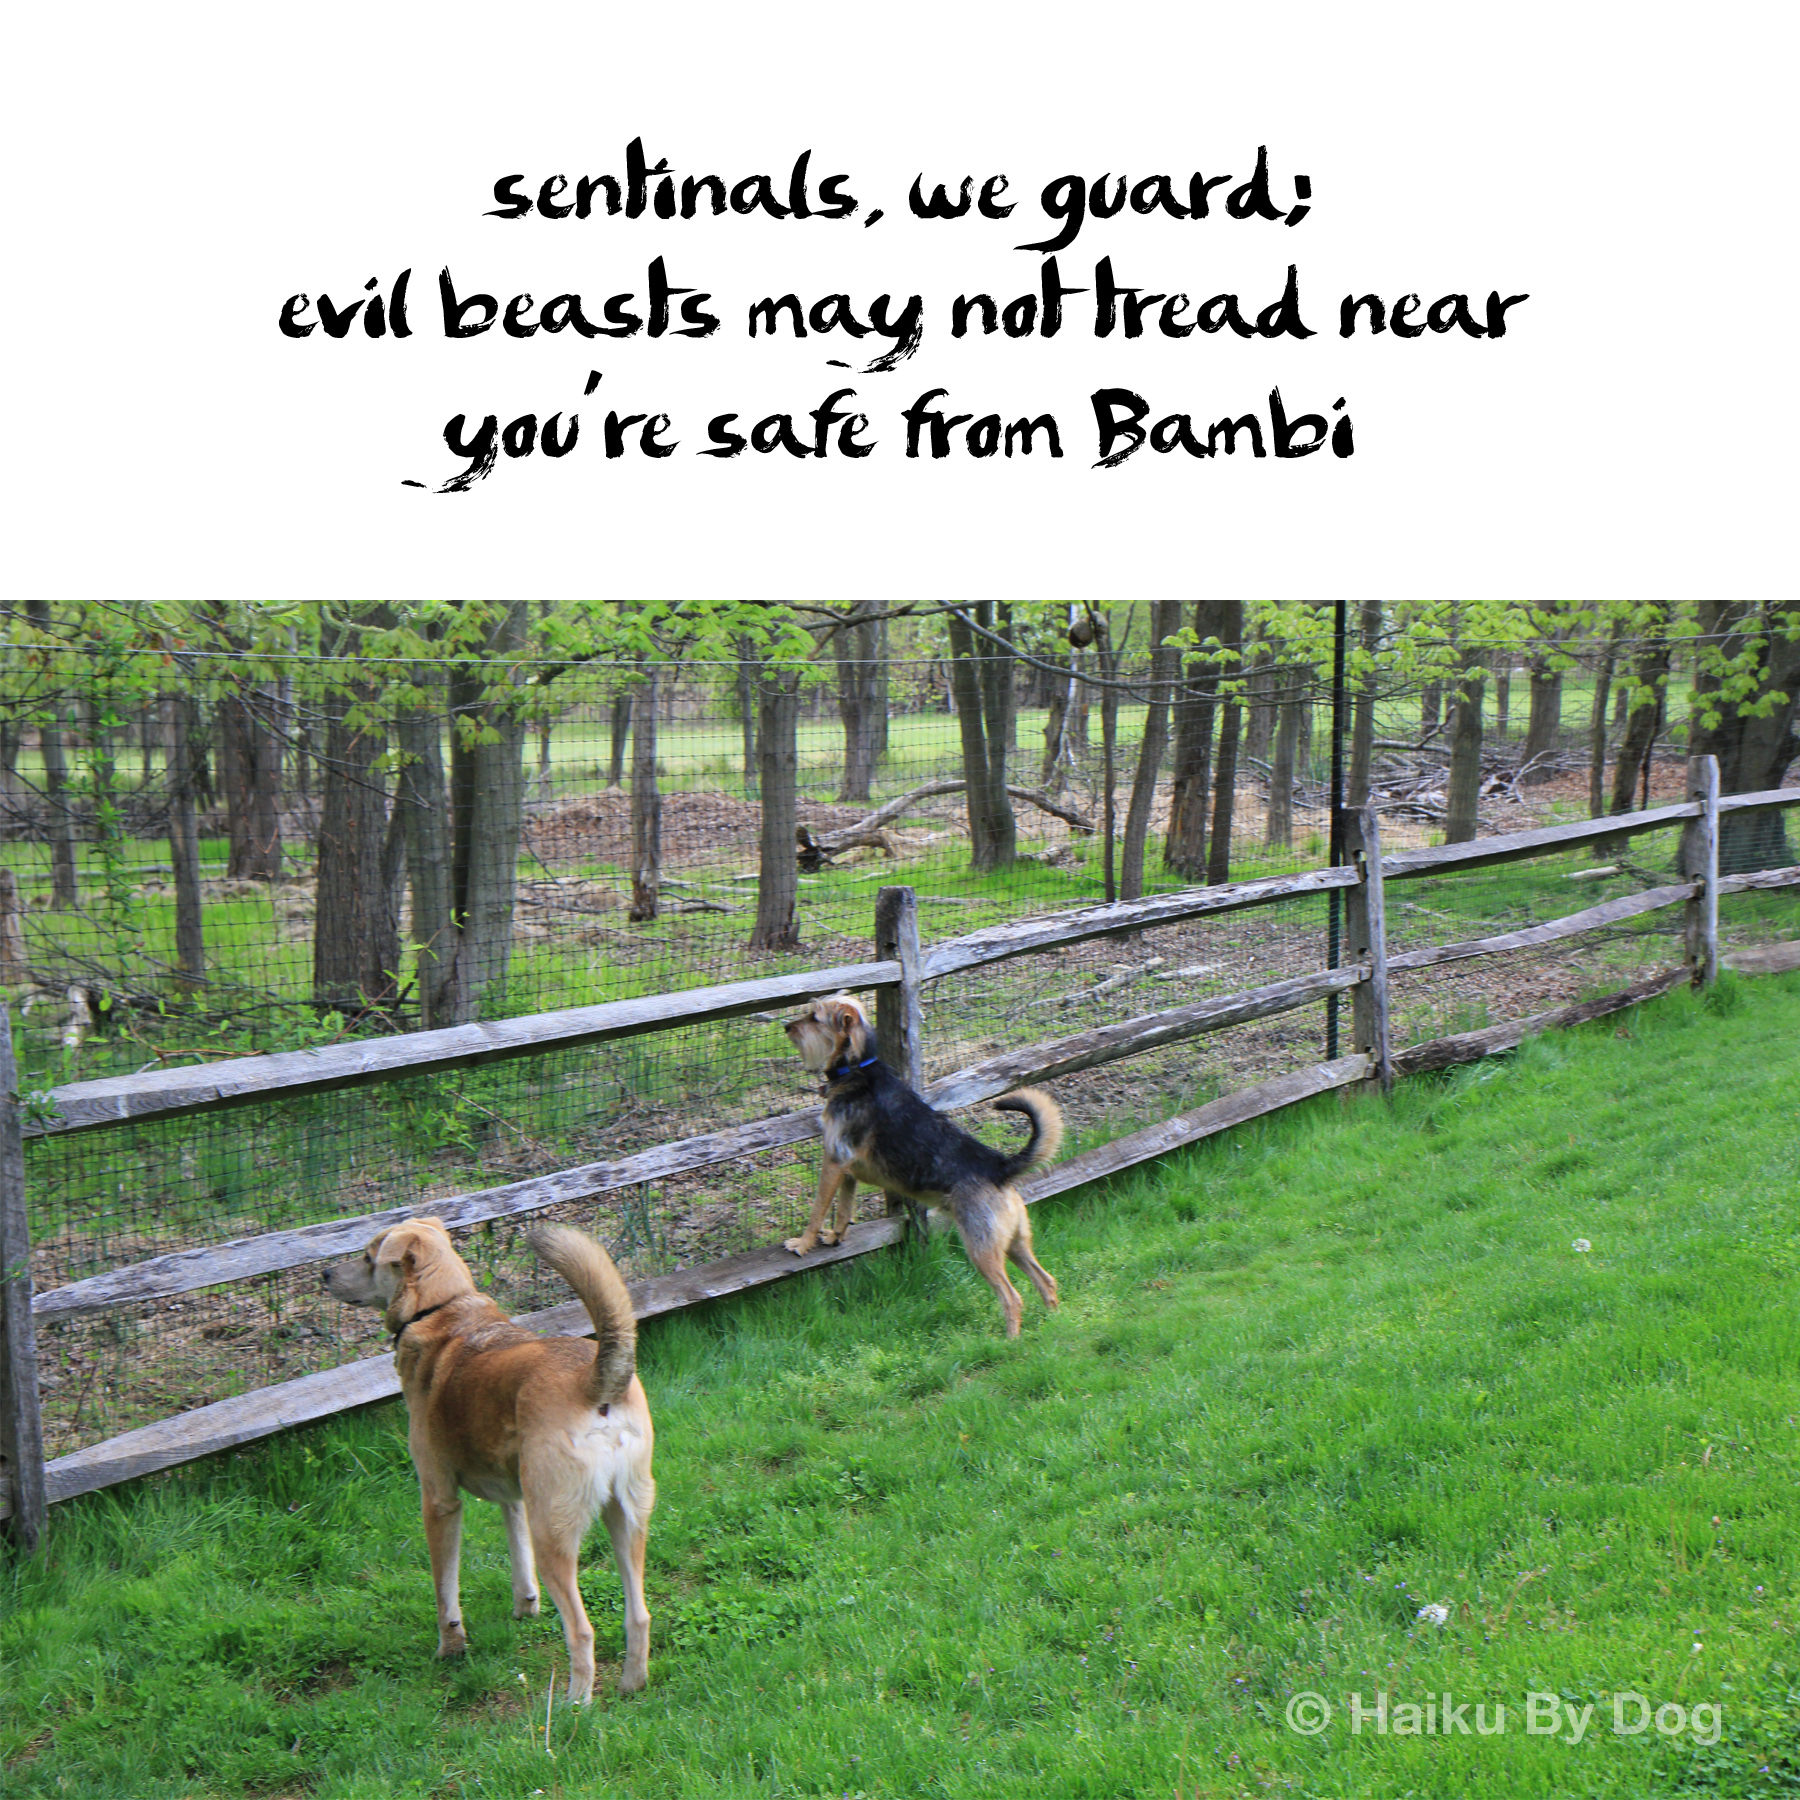 sentinels, we guard / evil beasts may not tread near / you're safe from Bambi